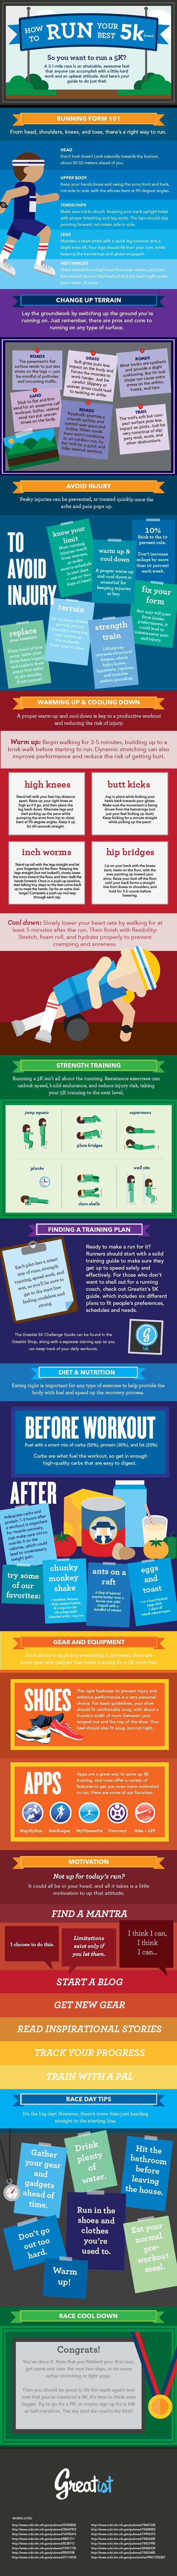 How to Run Your Best 5K Ever [Infographic]